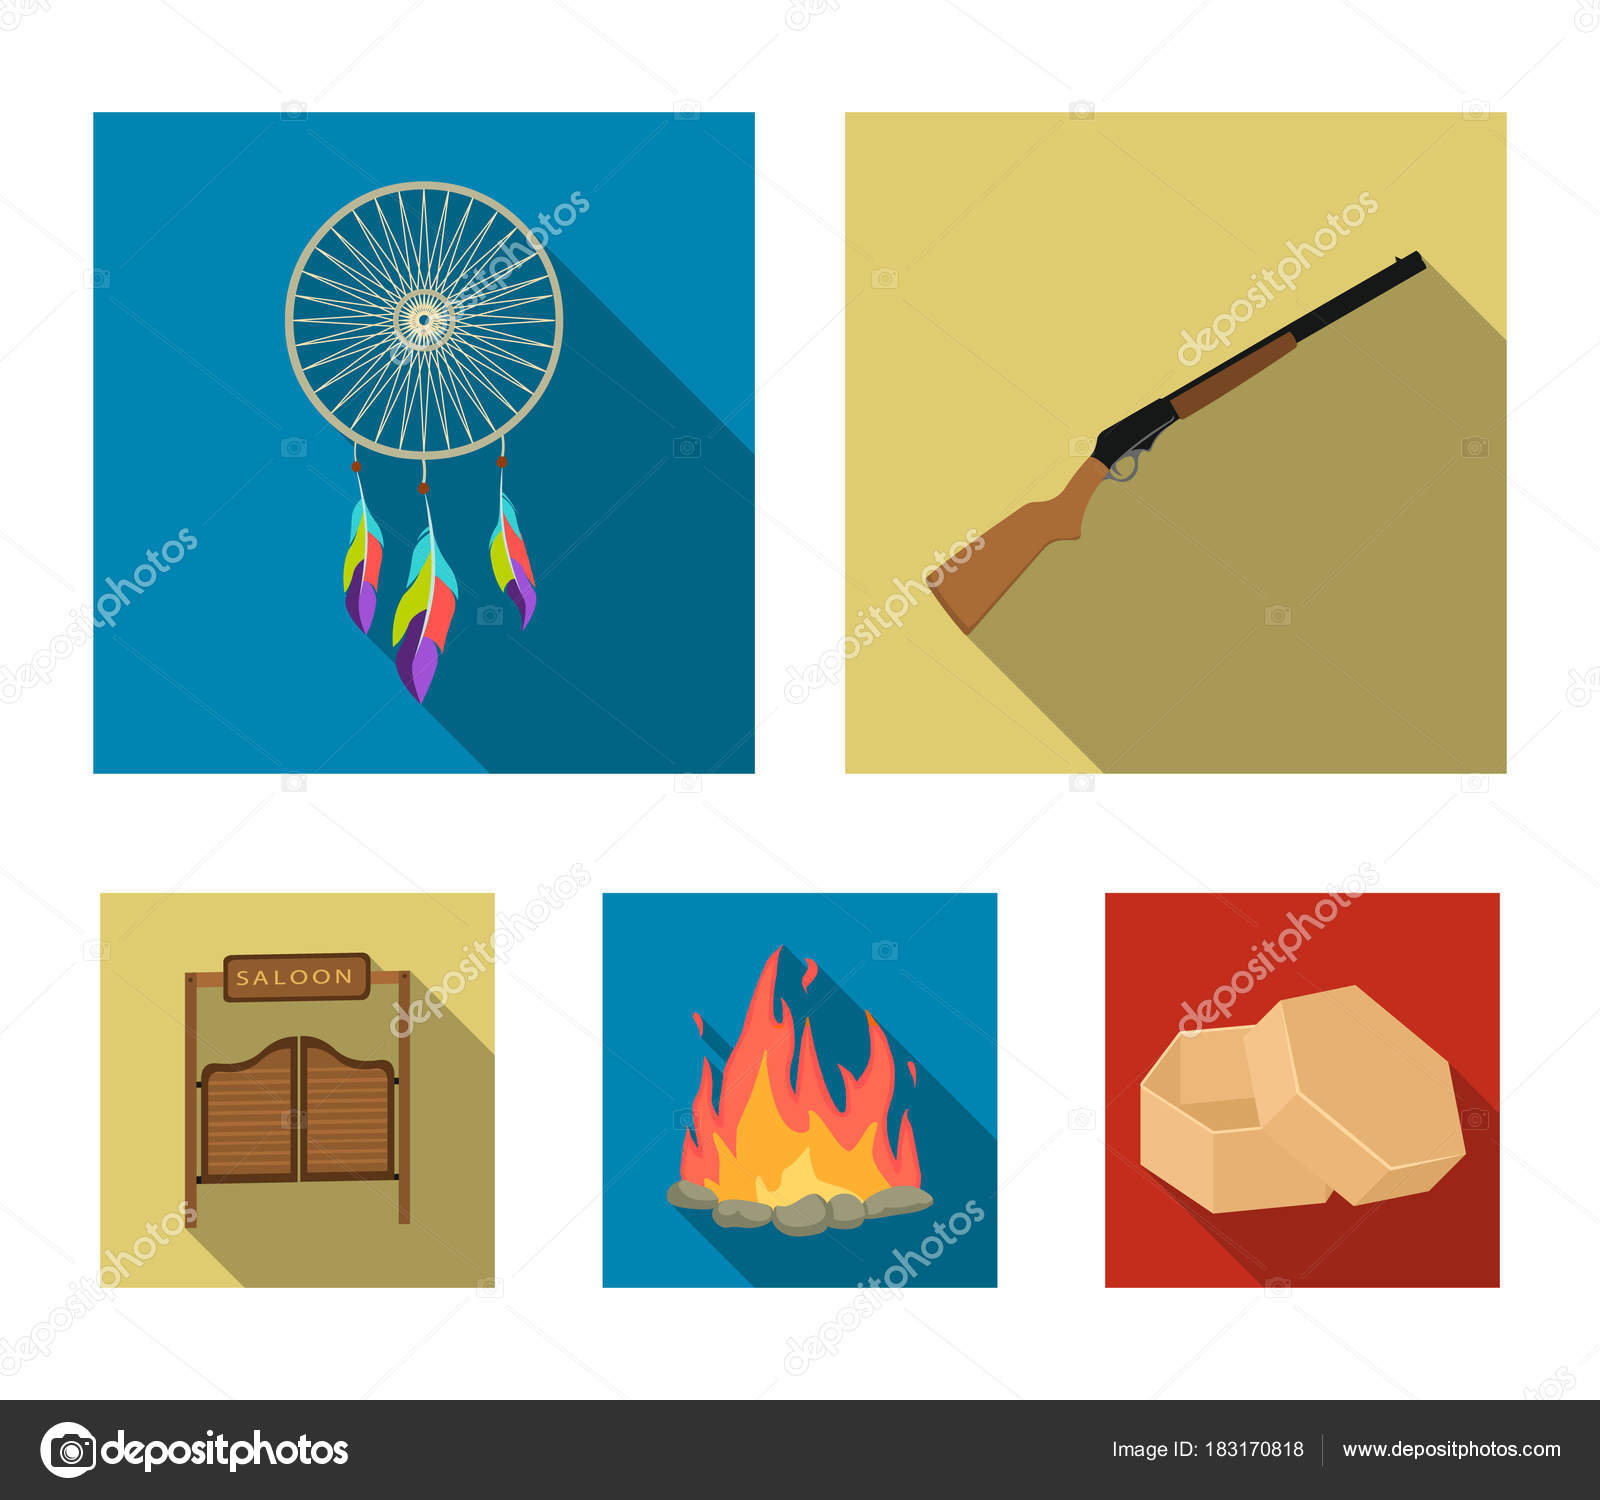 A dream catcher a gun a saloon door a firewild west set a dream catcher a gun a saloon door a fire set collection icons in flat style vector symbol stock illustration vector by pandavector biocorpaavc Choice Image